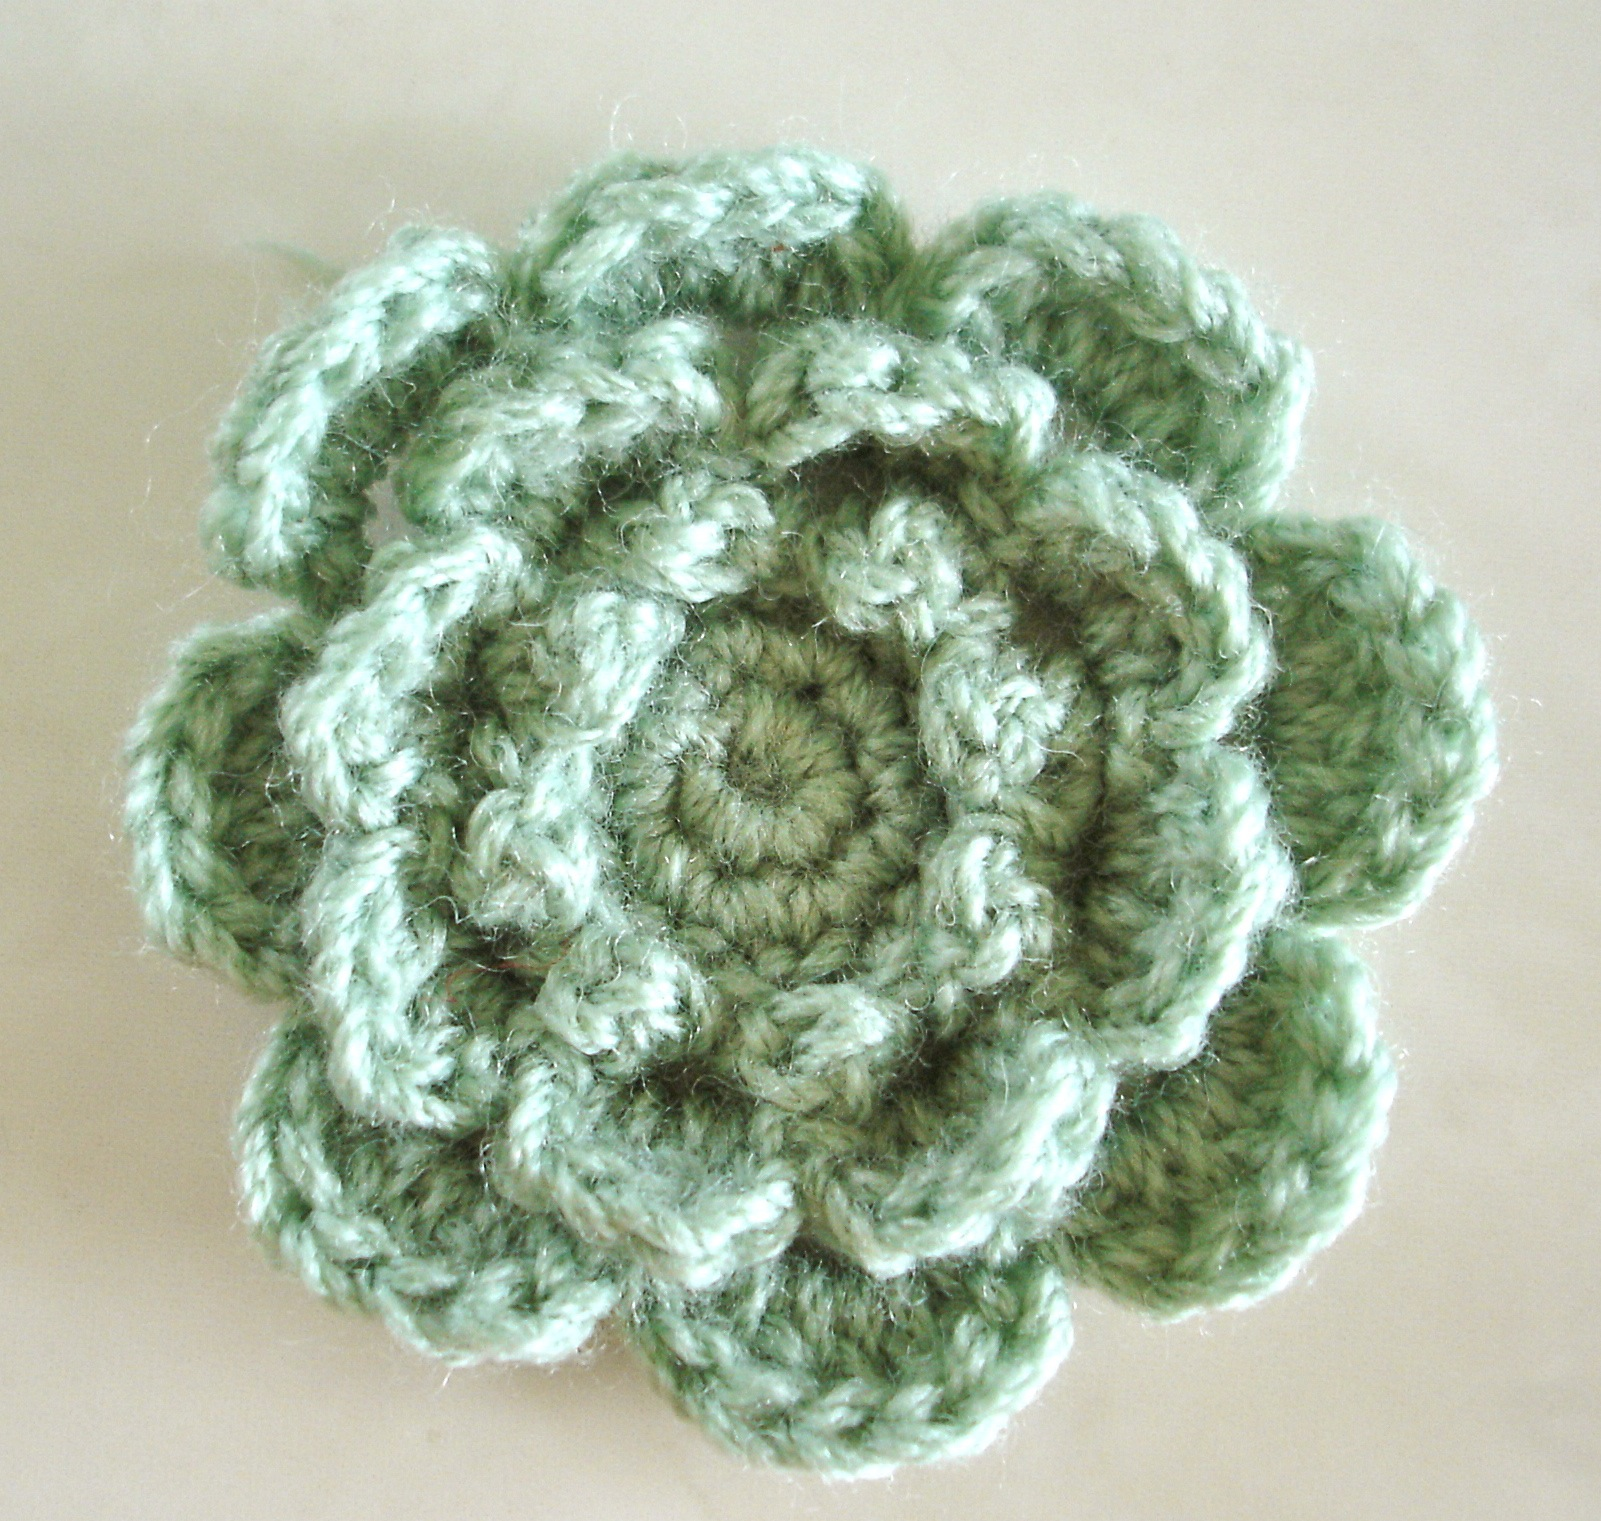 Crochet Me Free Patterns : Its interesting the way new patterns take form. For amigurumis, I ...